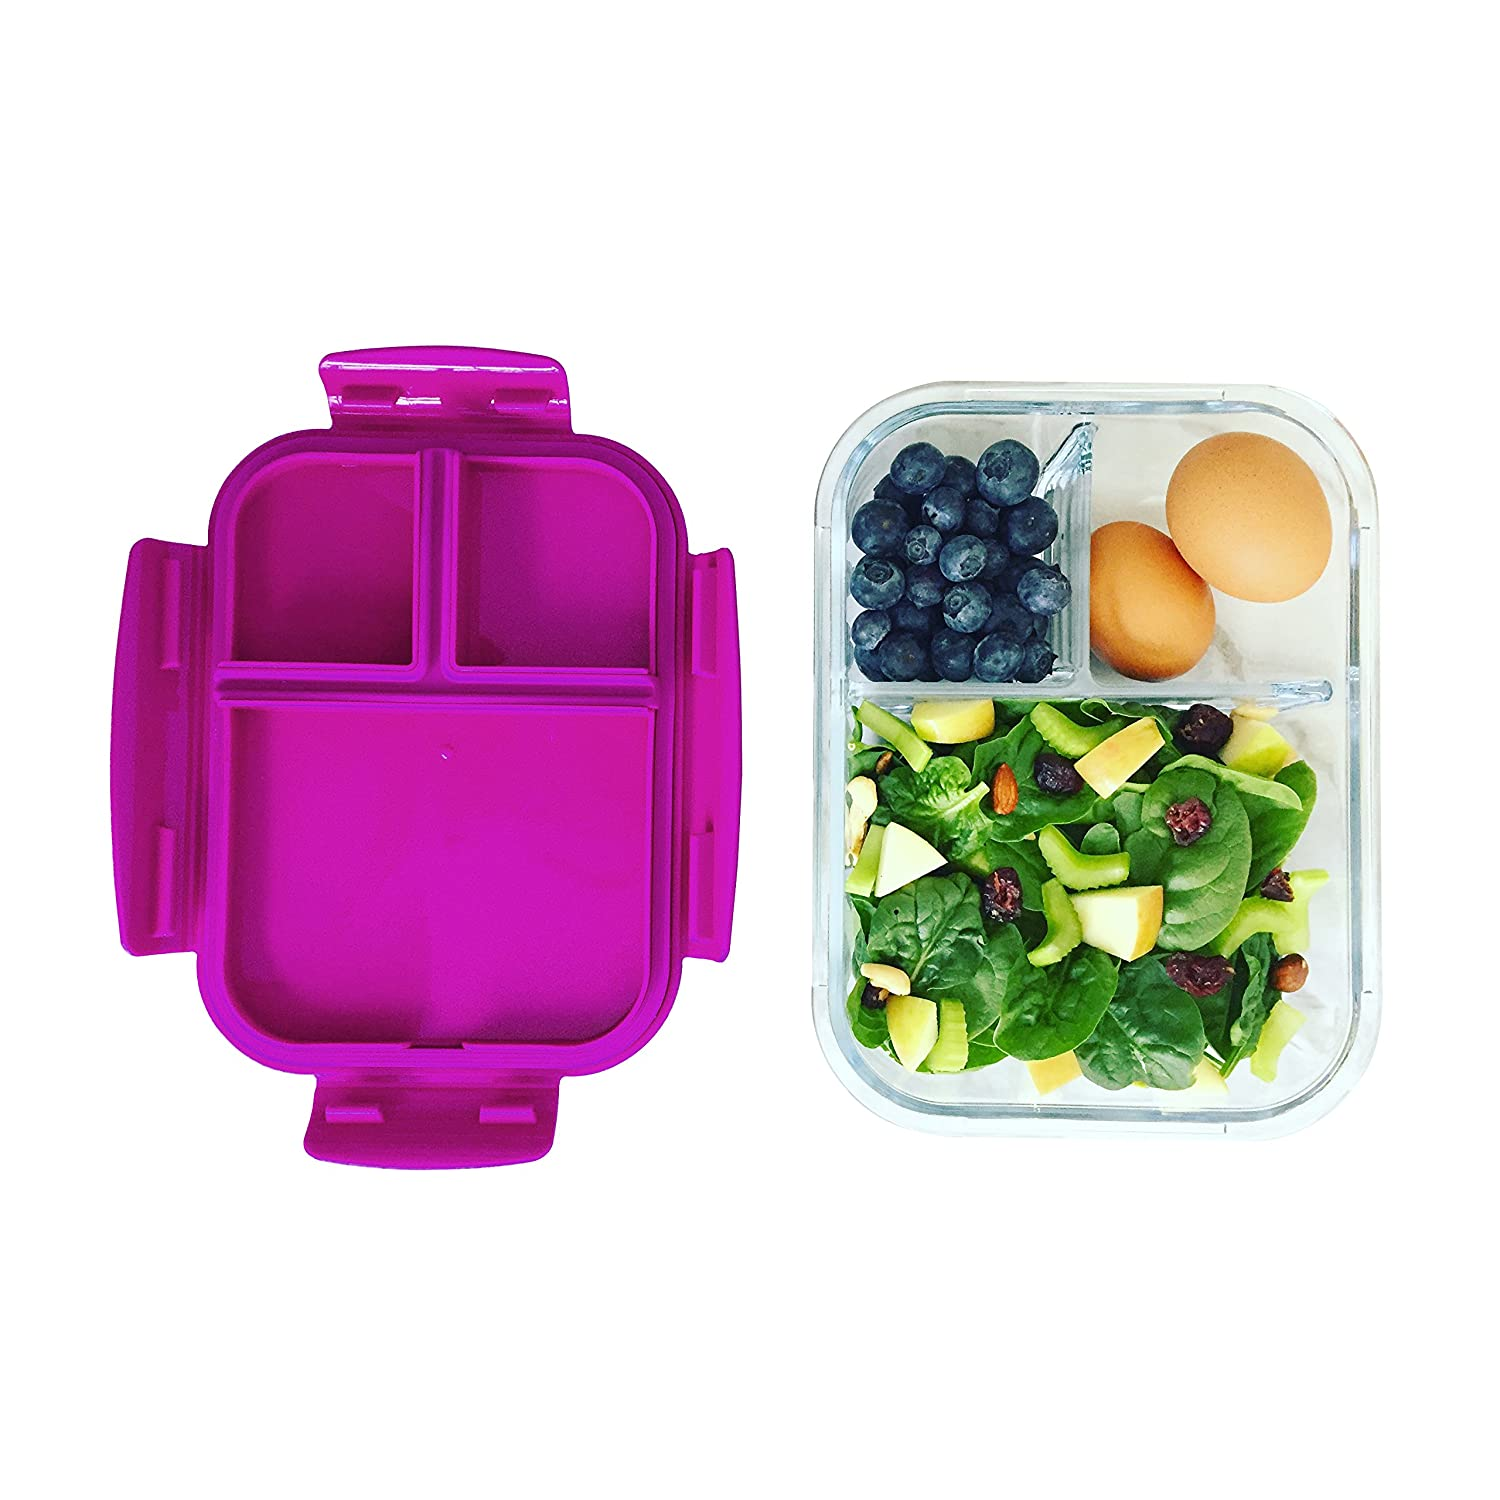 Amazoncom Bentgo Glass (Purple)  Leak Proof, 3 Compartment Oven Safe Glass Lunch